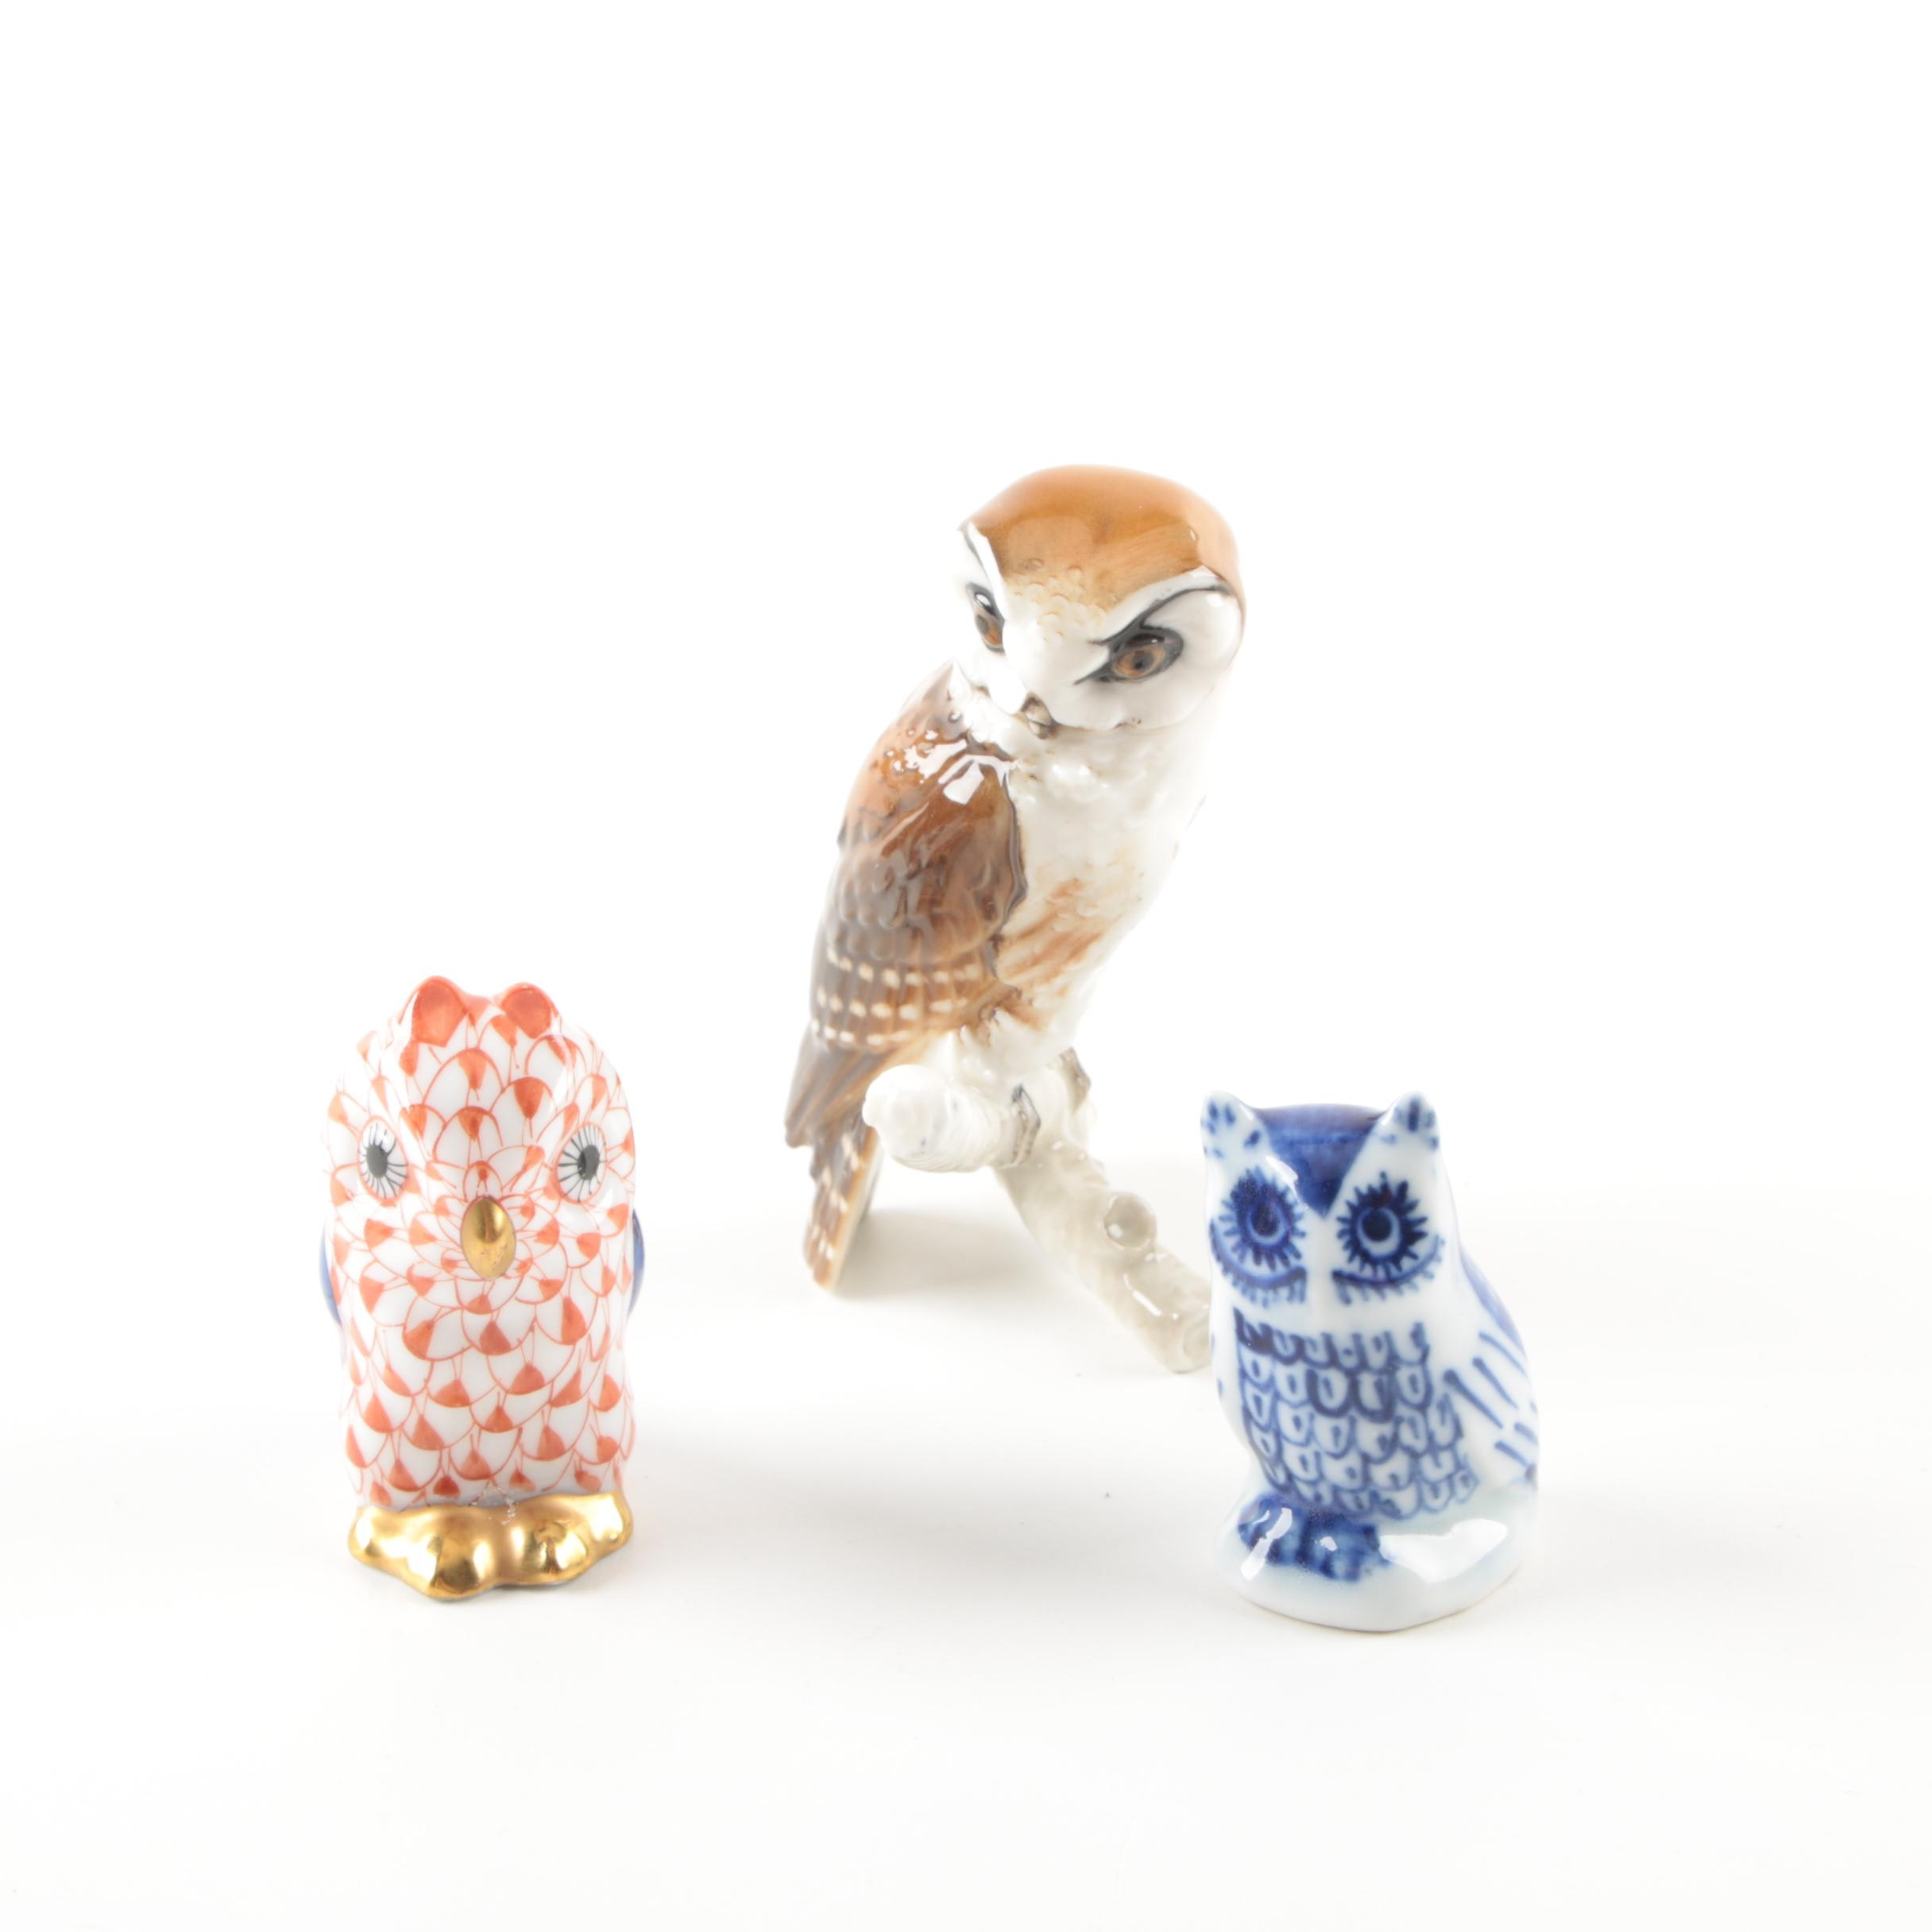 Porcelain Owl Figurines featuring Hutschenreuther and Herend